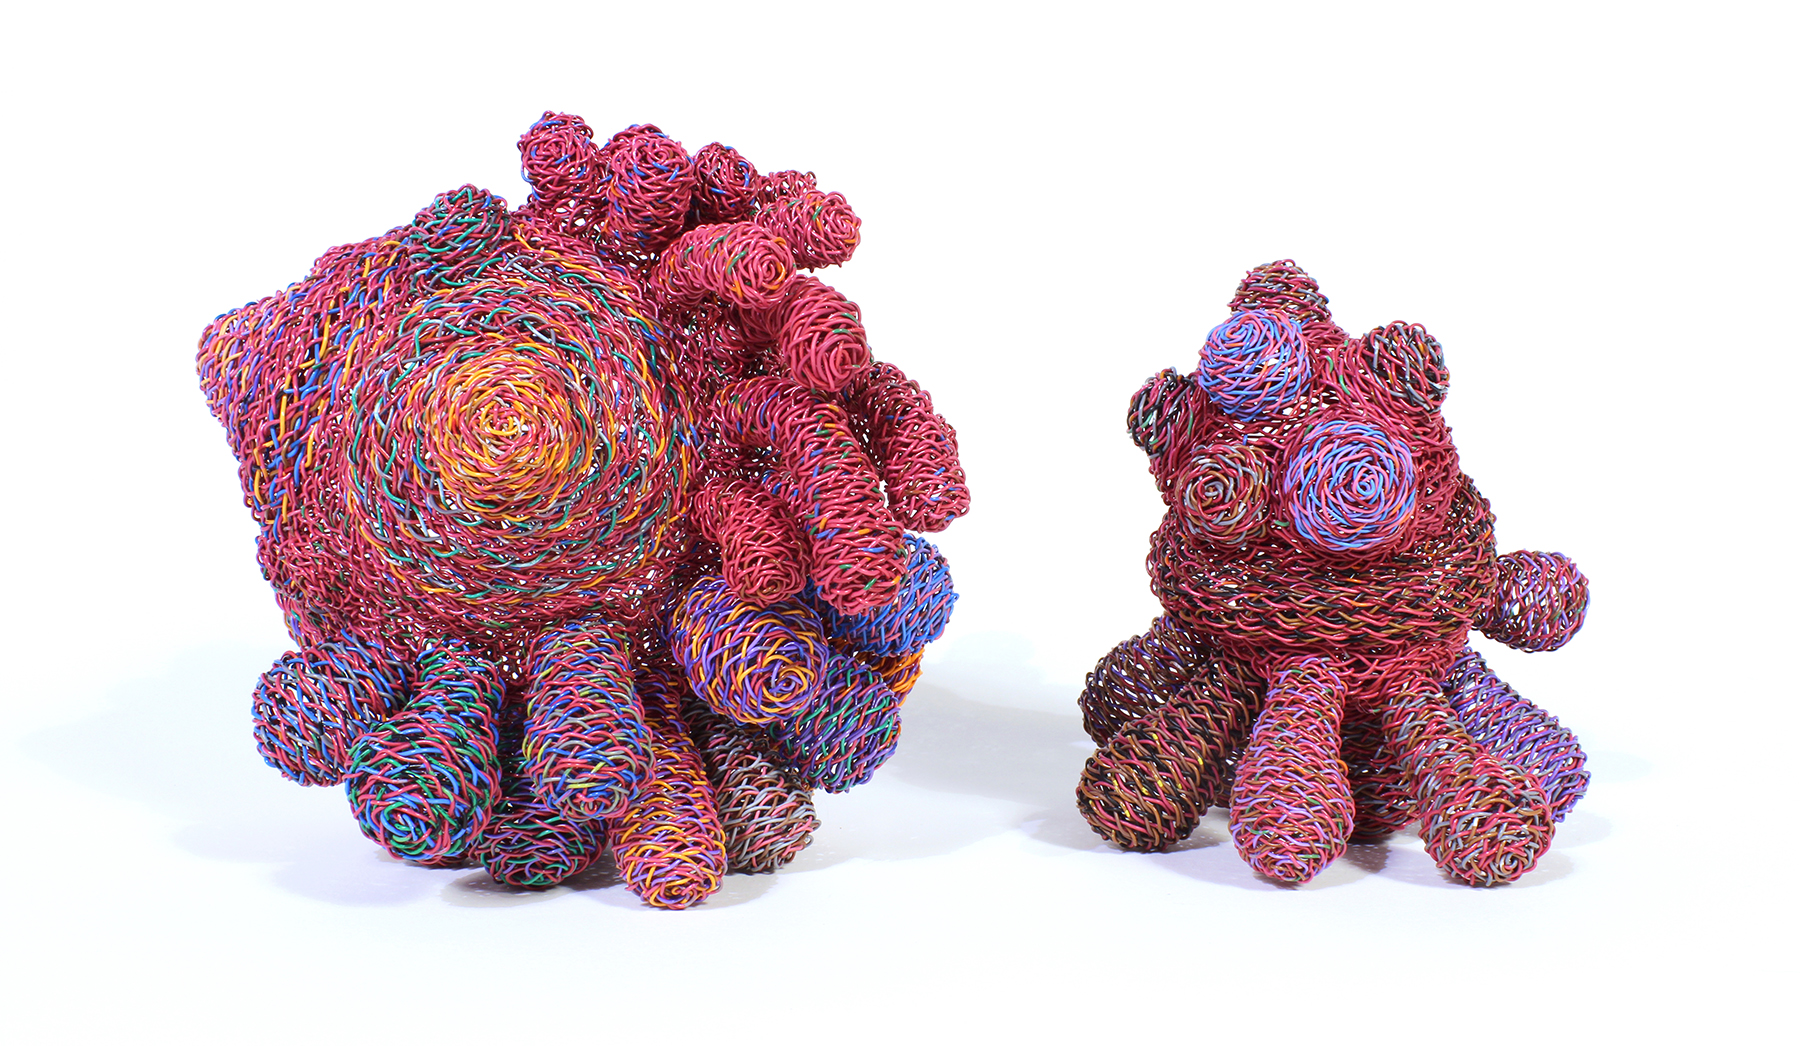 """Twyla Exner, Things 7 & 9, 7: 6""""x6""""x6"""" / 15x15x15cm 